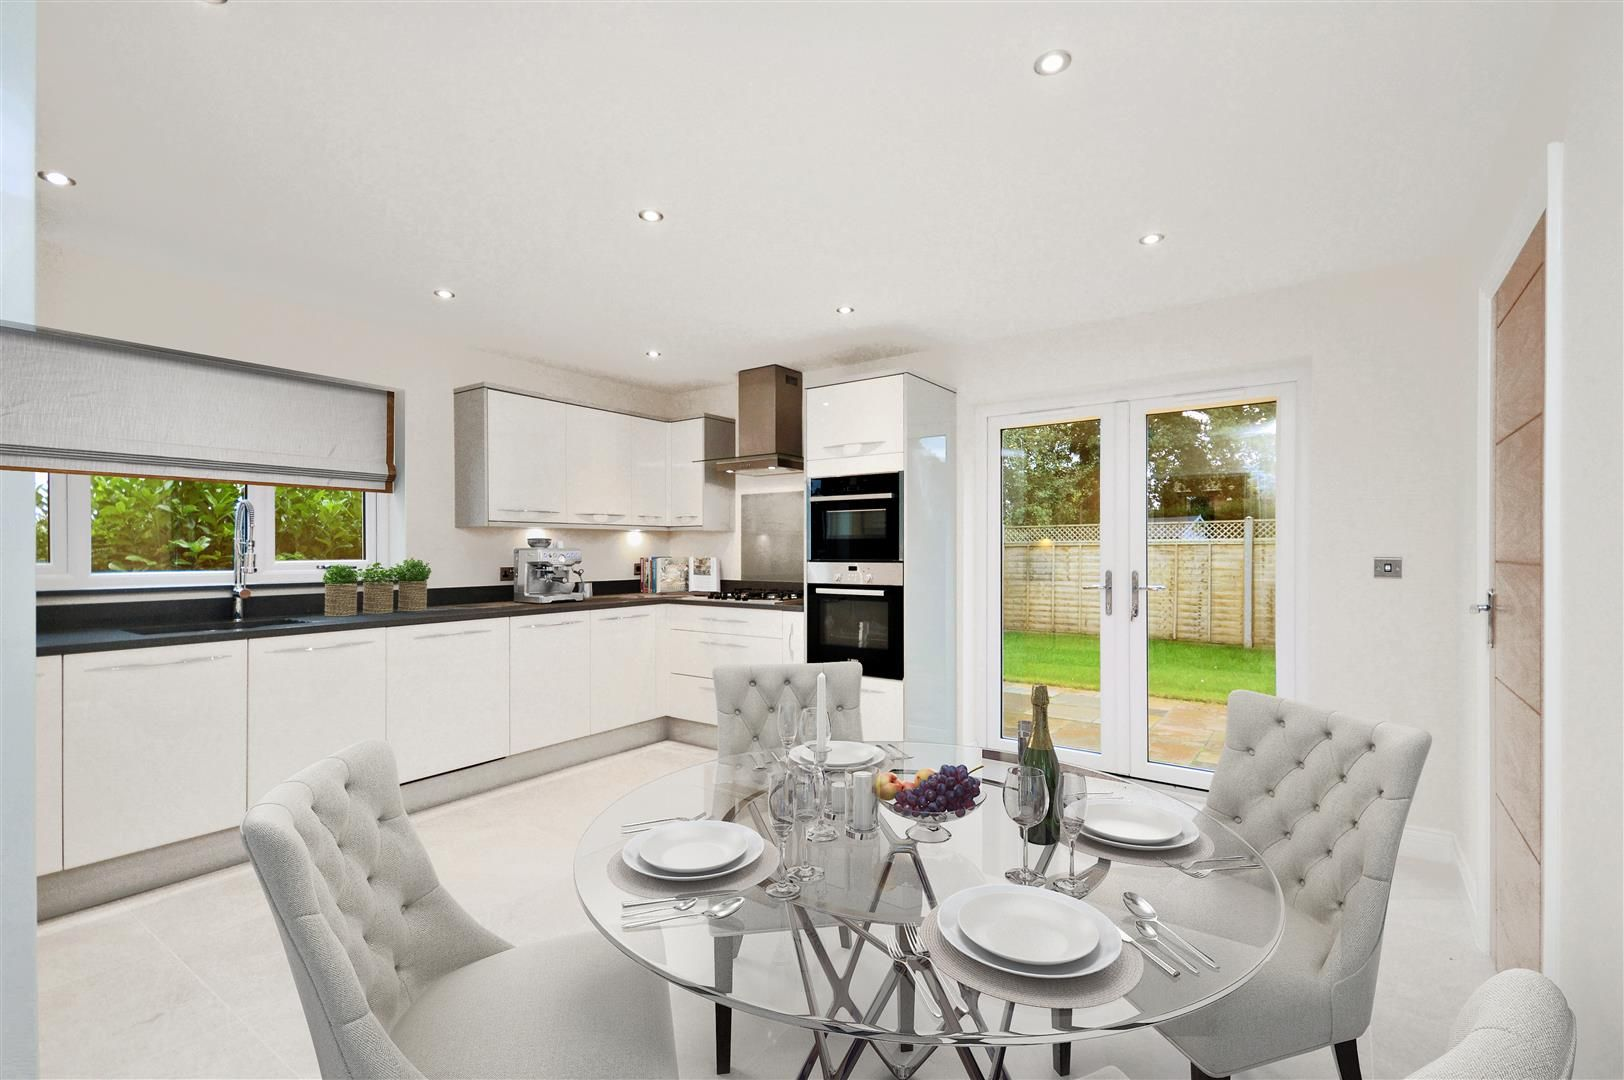 4 bed detached for sale in Kings Acre  - Property Image 2